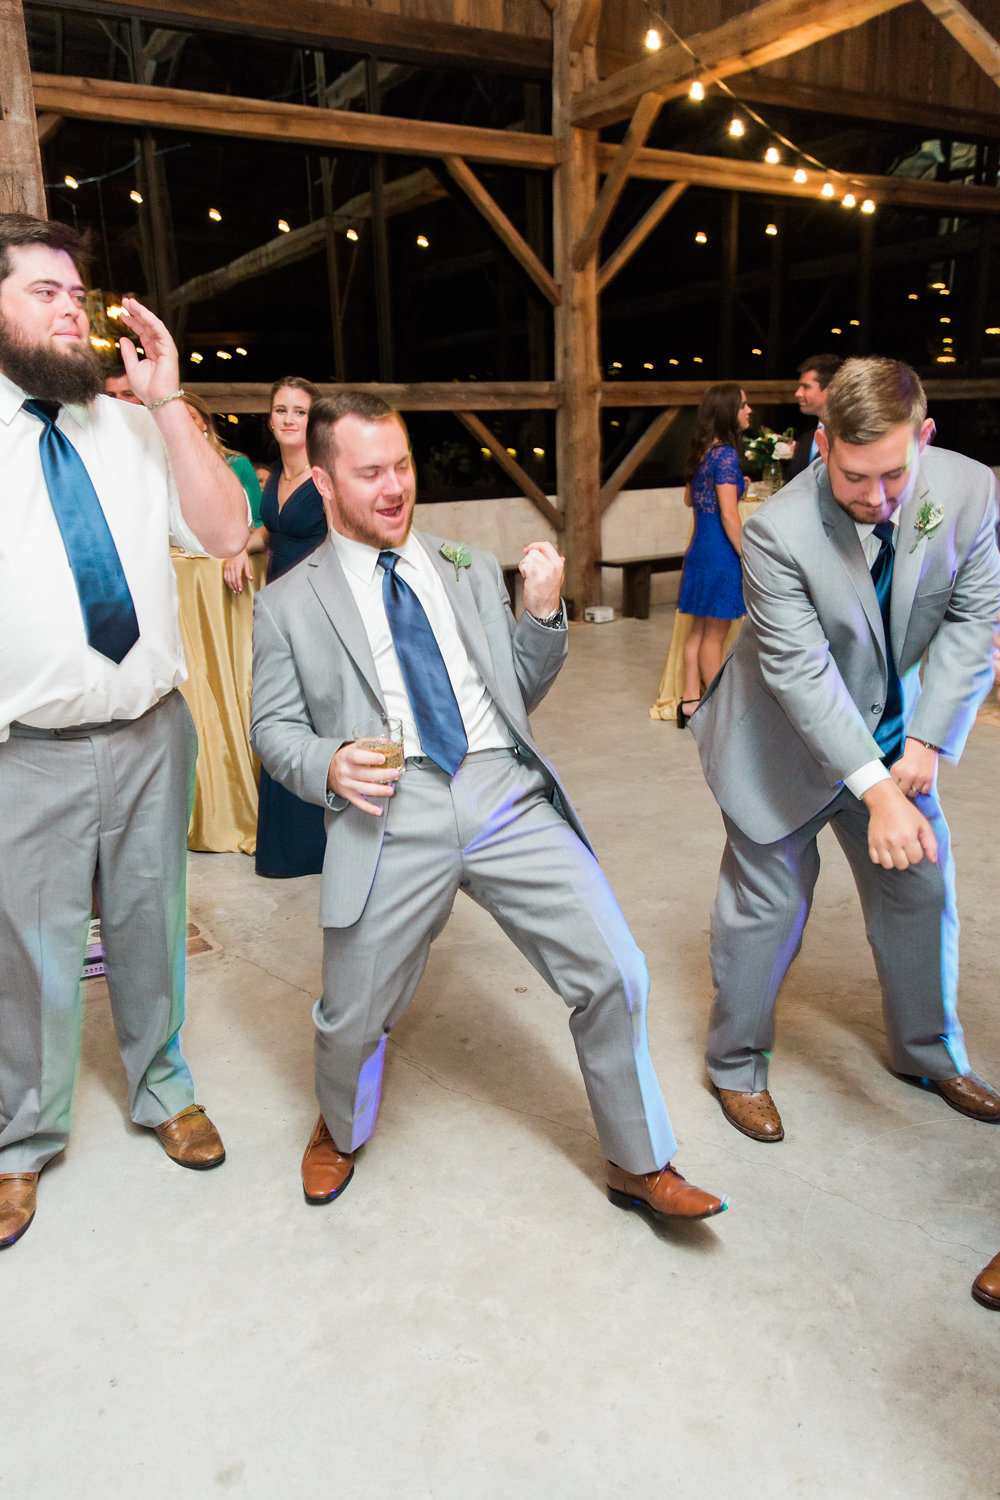 Air band moment between the groomsmen.